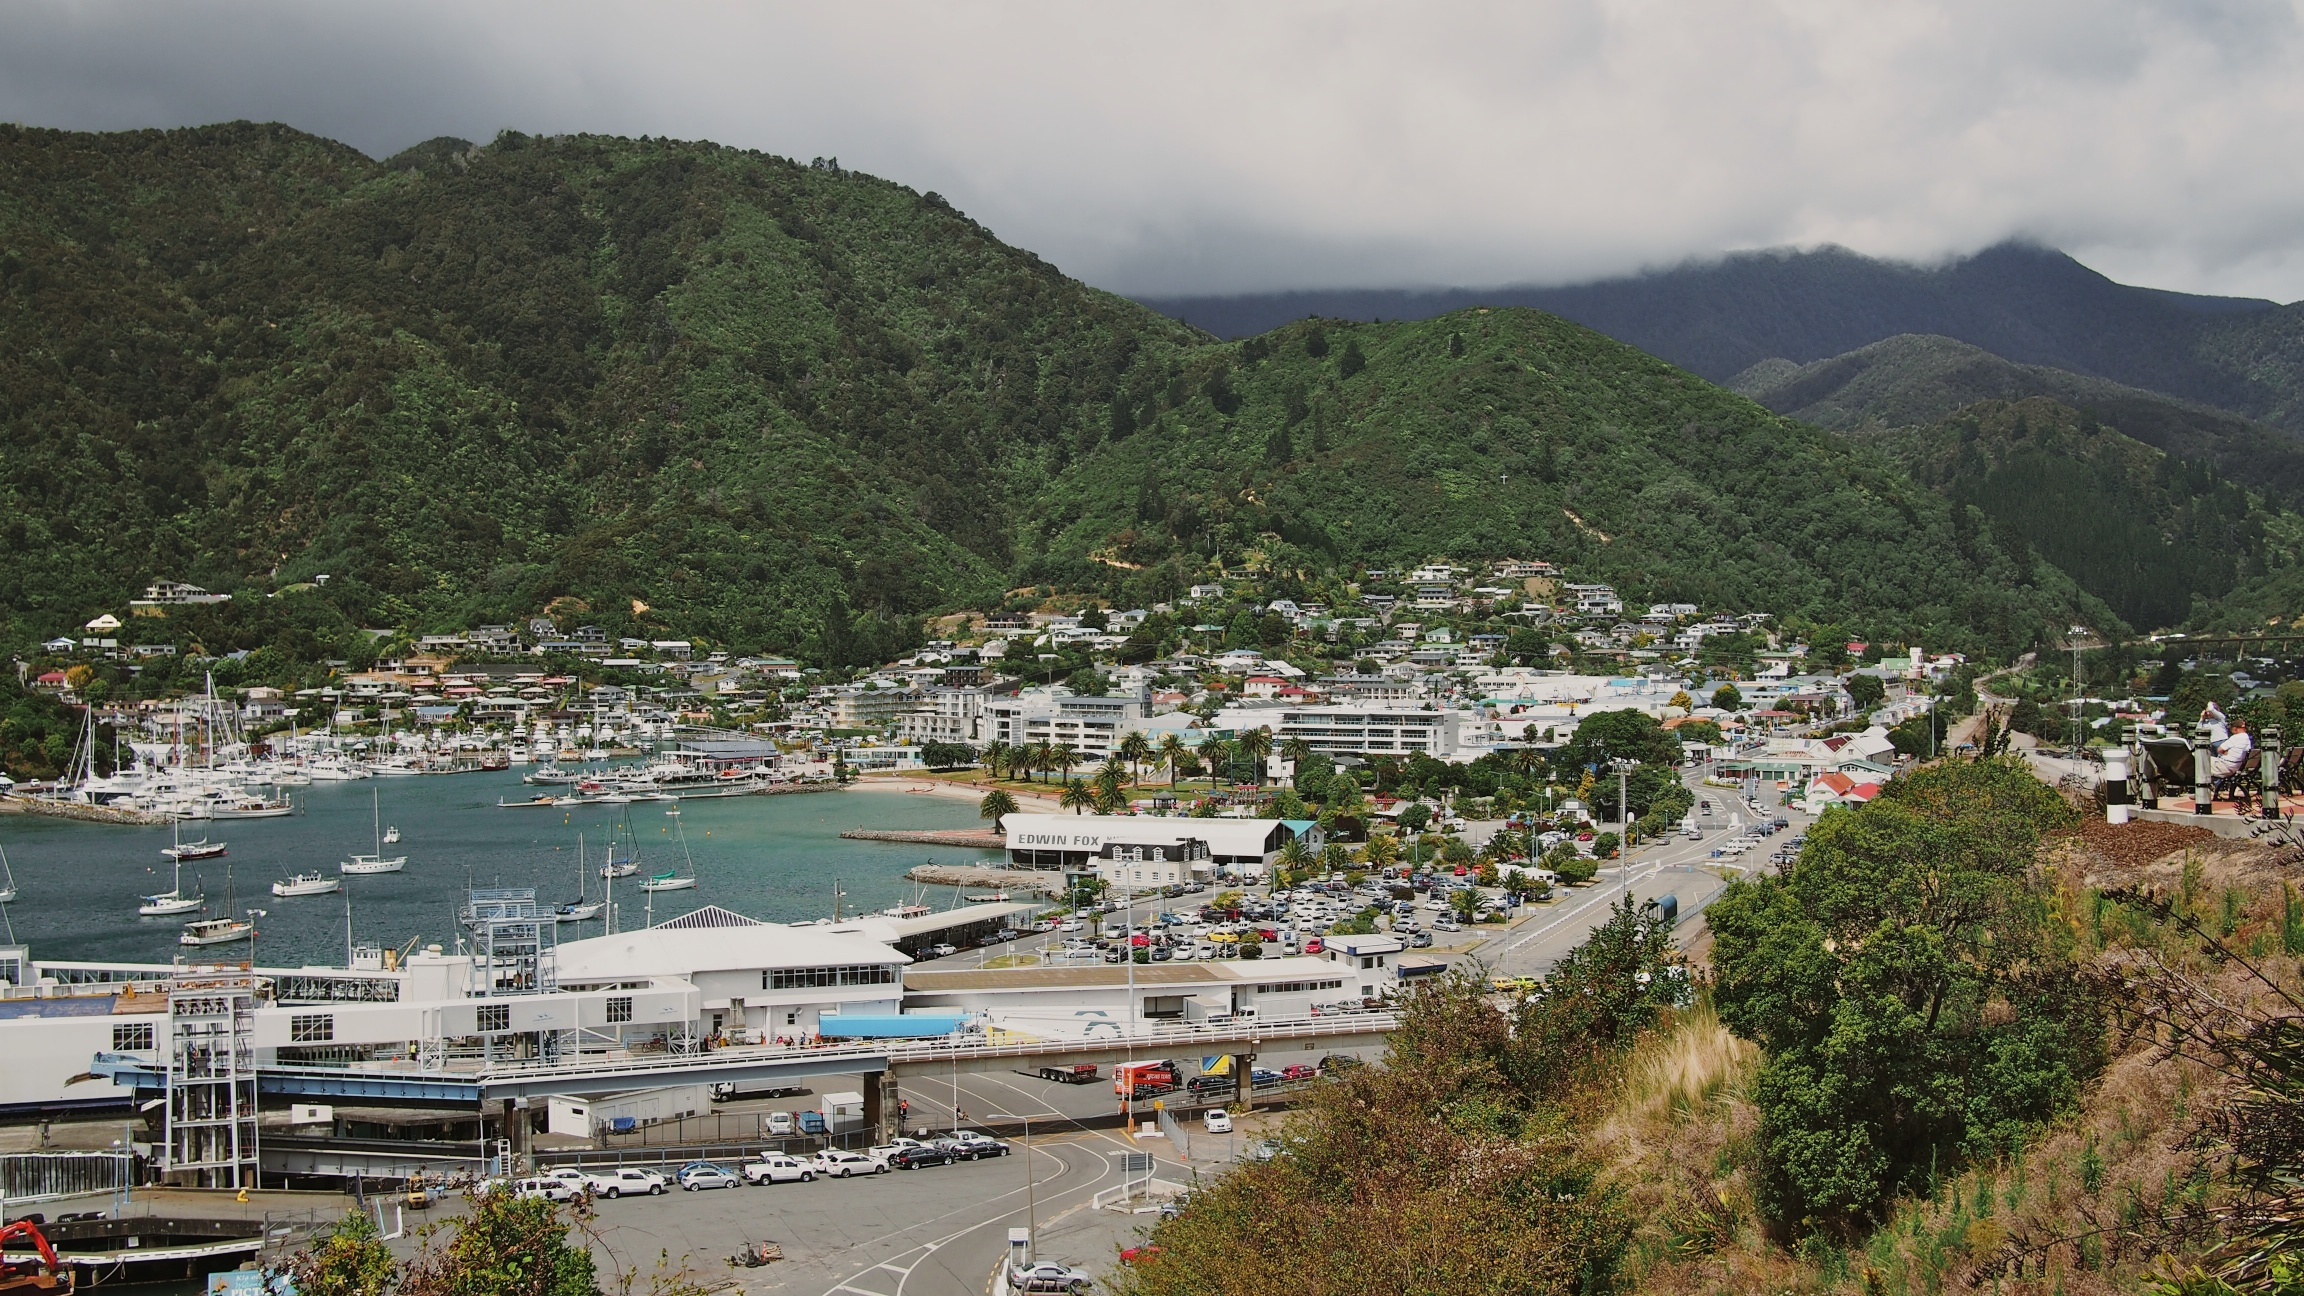 The small little town of Picton